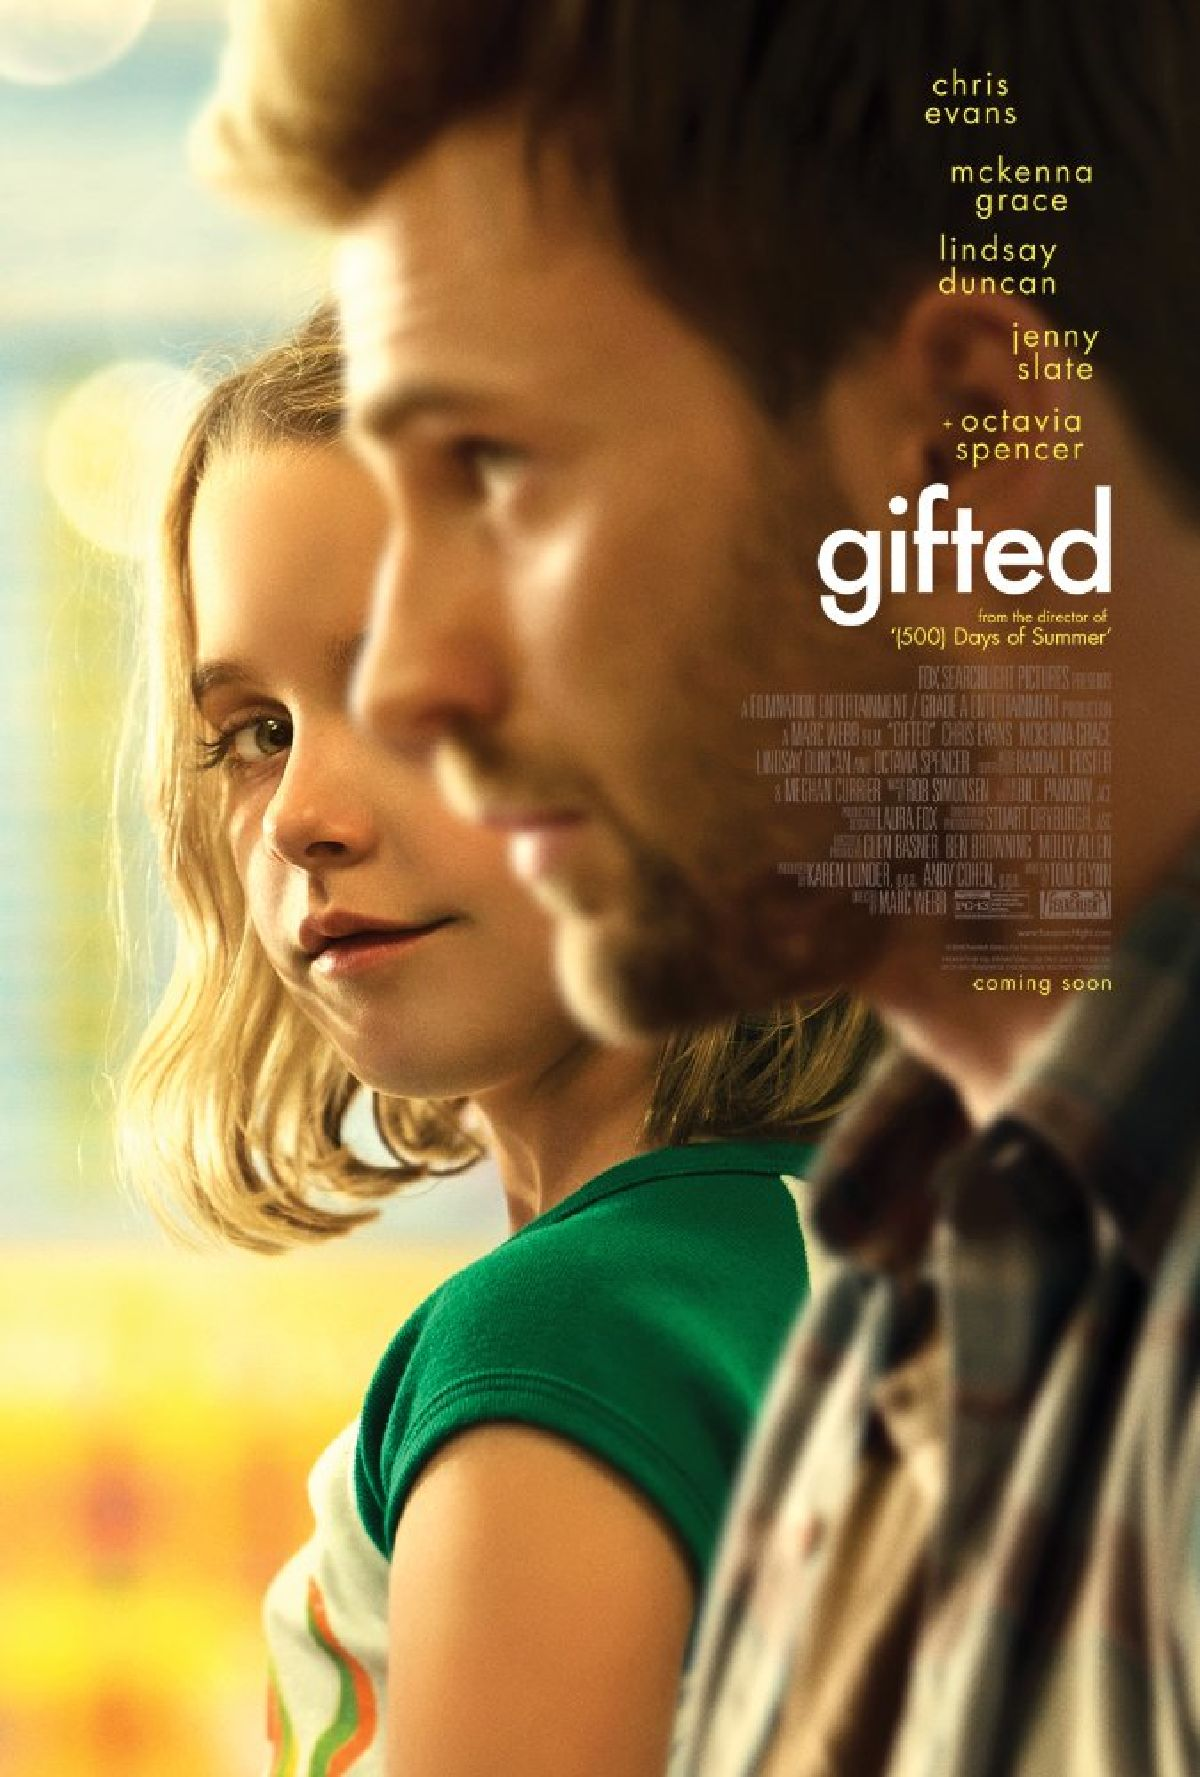 'Gifted' movie poster